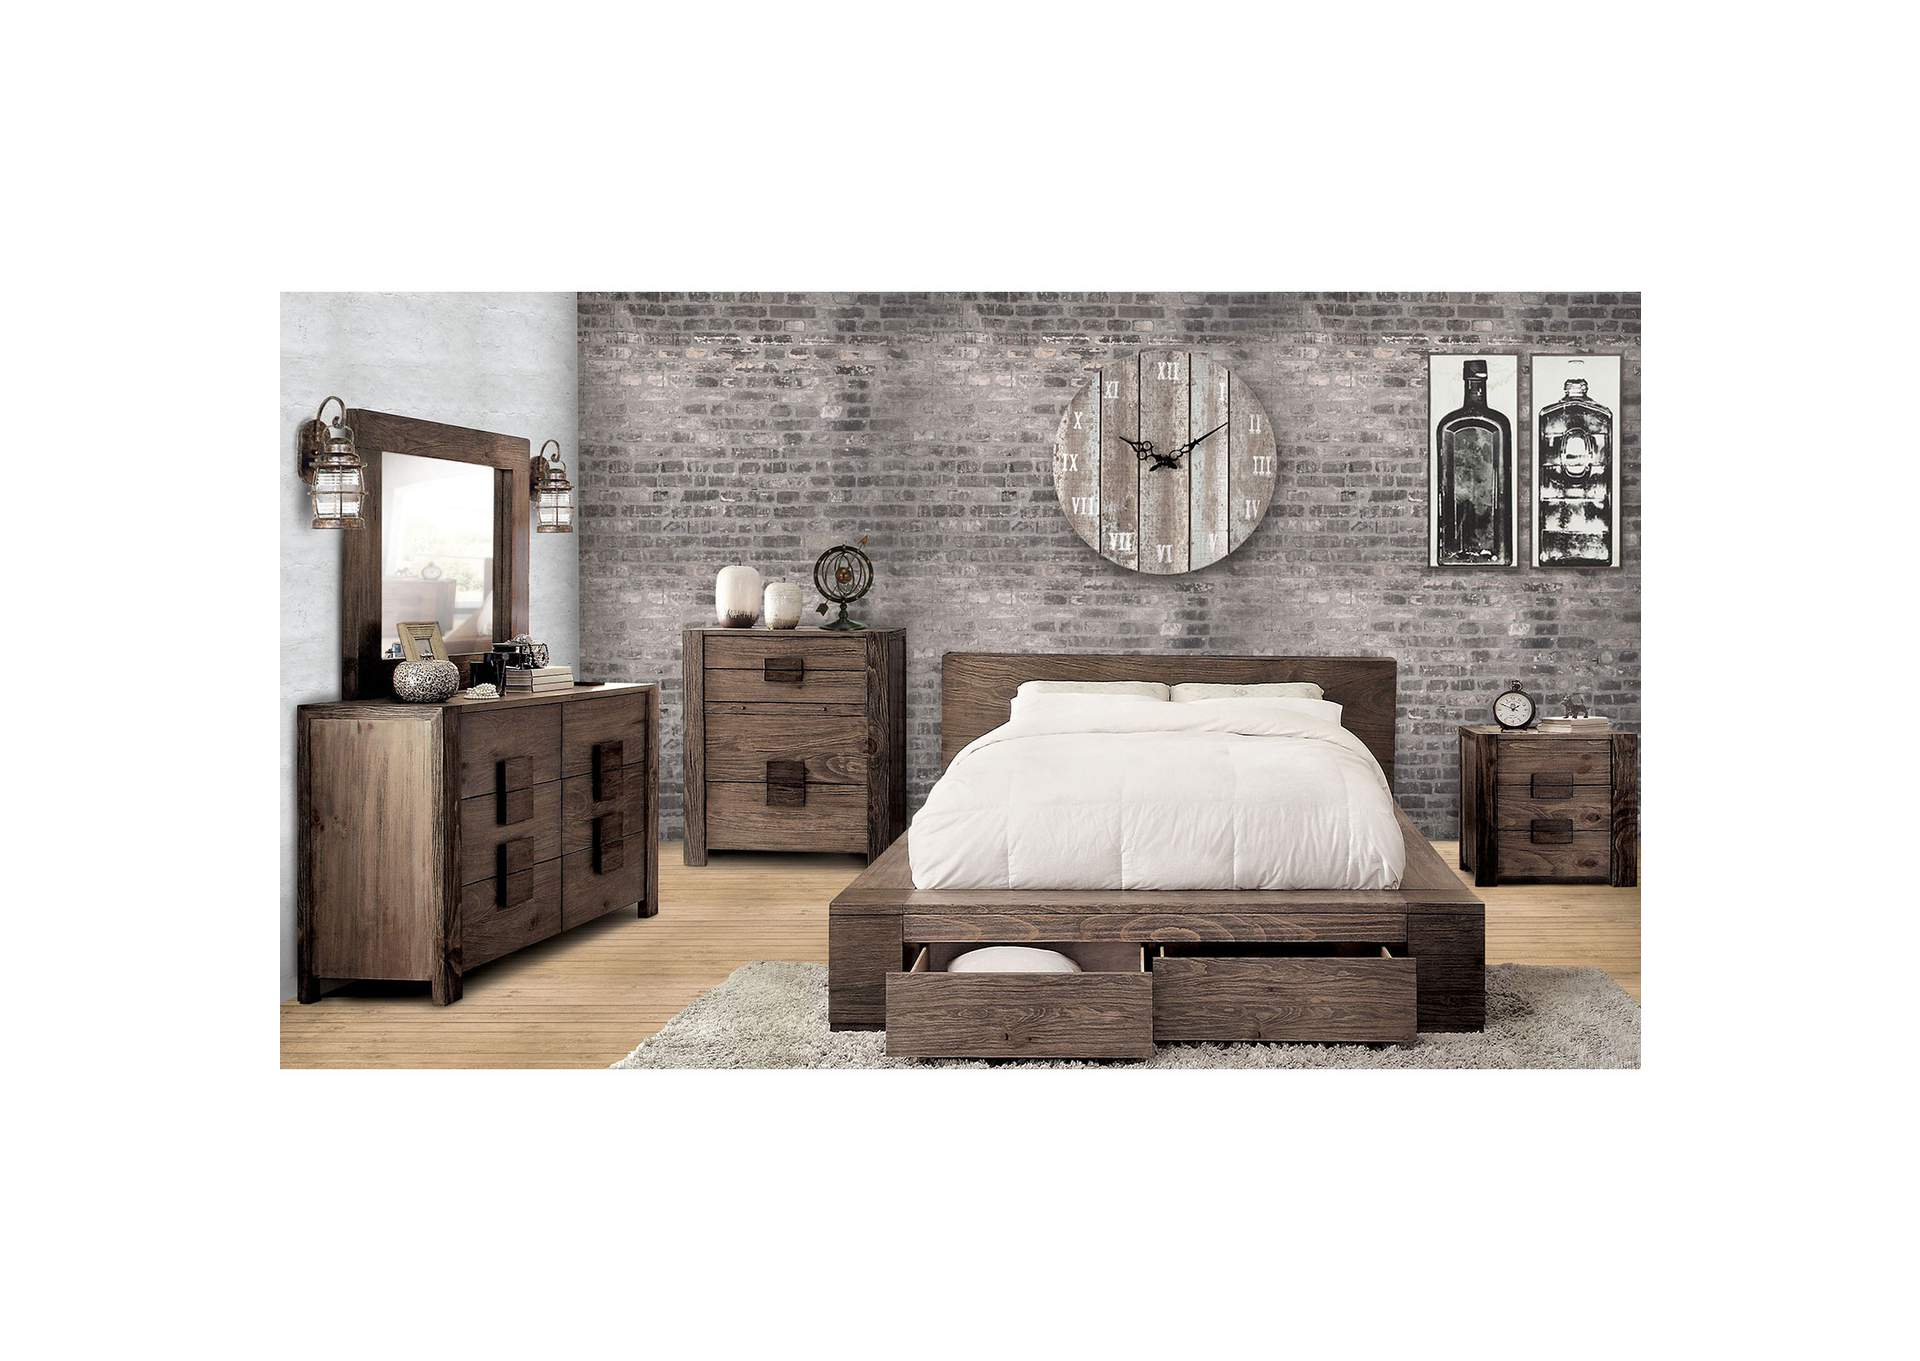 Janeiro Rustic Natural Tone Queen Platform/Storage Bed,Furniture of America